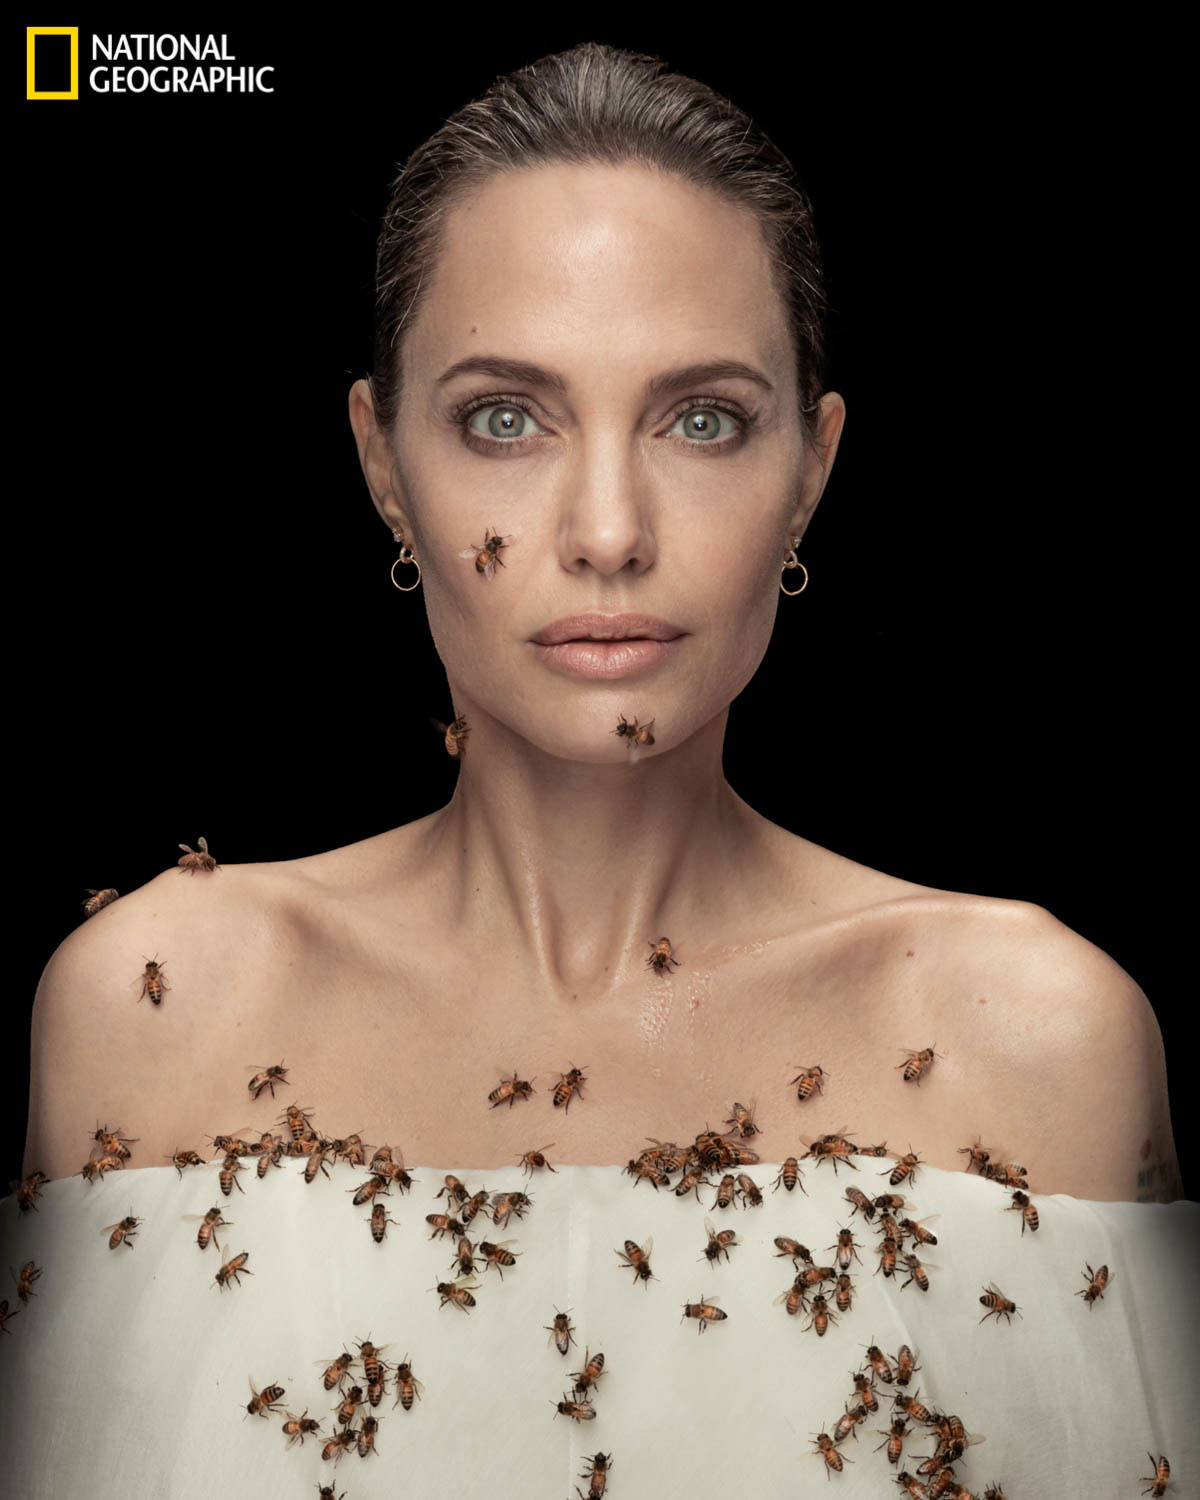 Angelina Jolie Poses With Bees to Raise Awareness